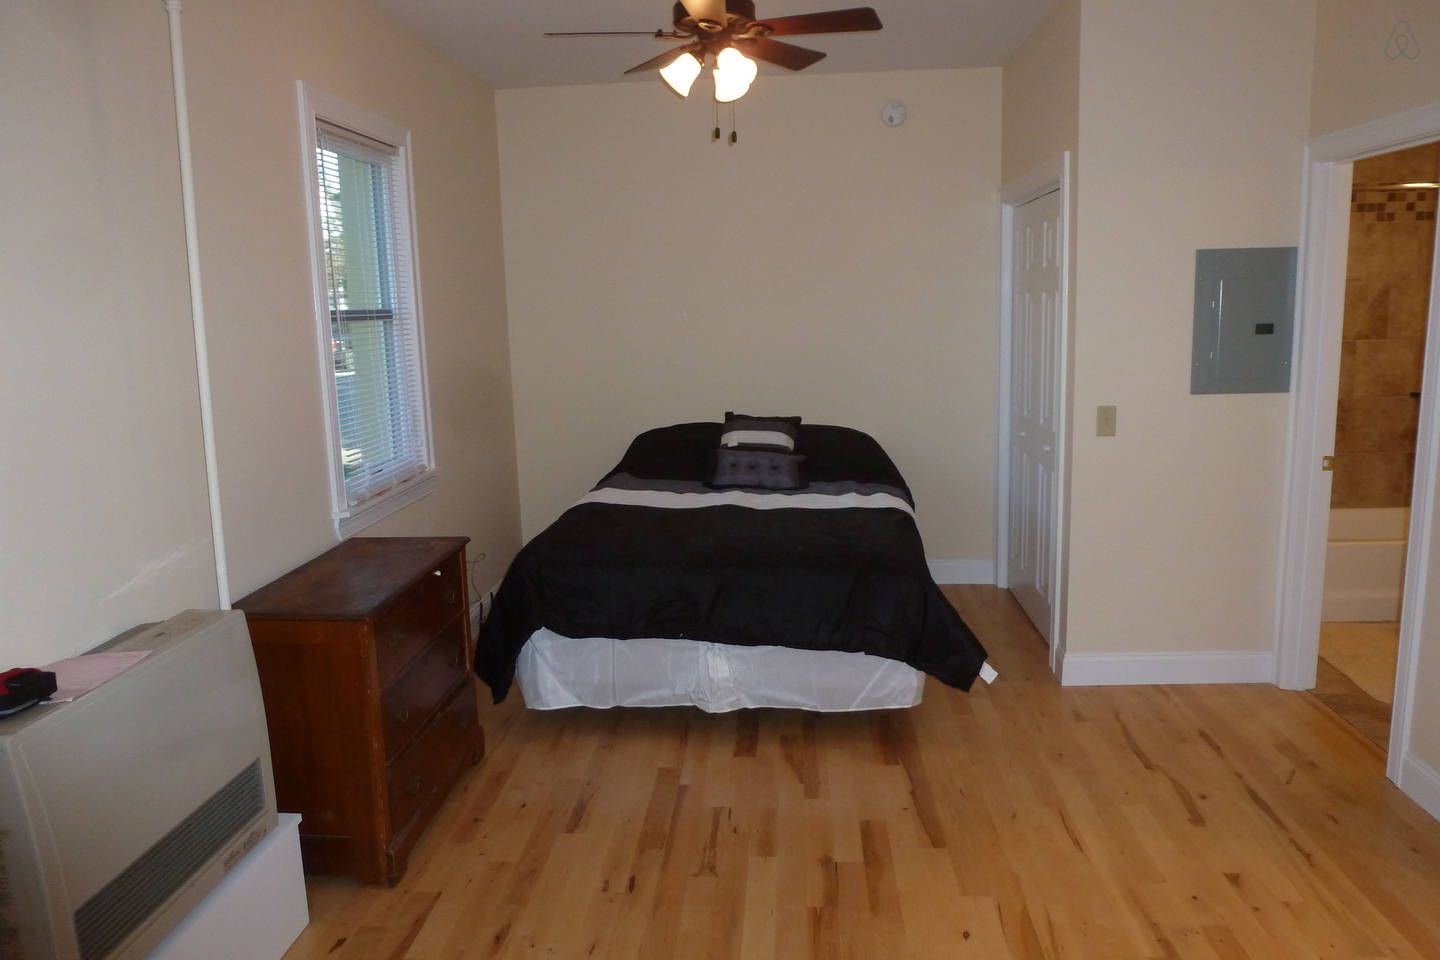 1 bedroom loft apartment  Studio Apartment  Great location  vacation rental in Burlington